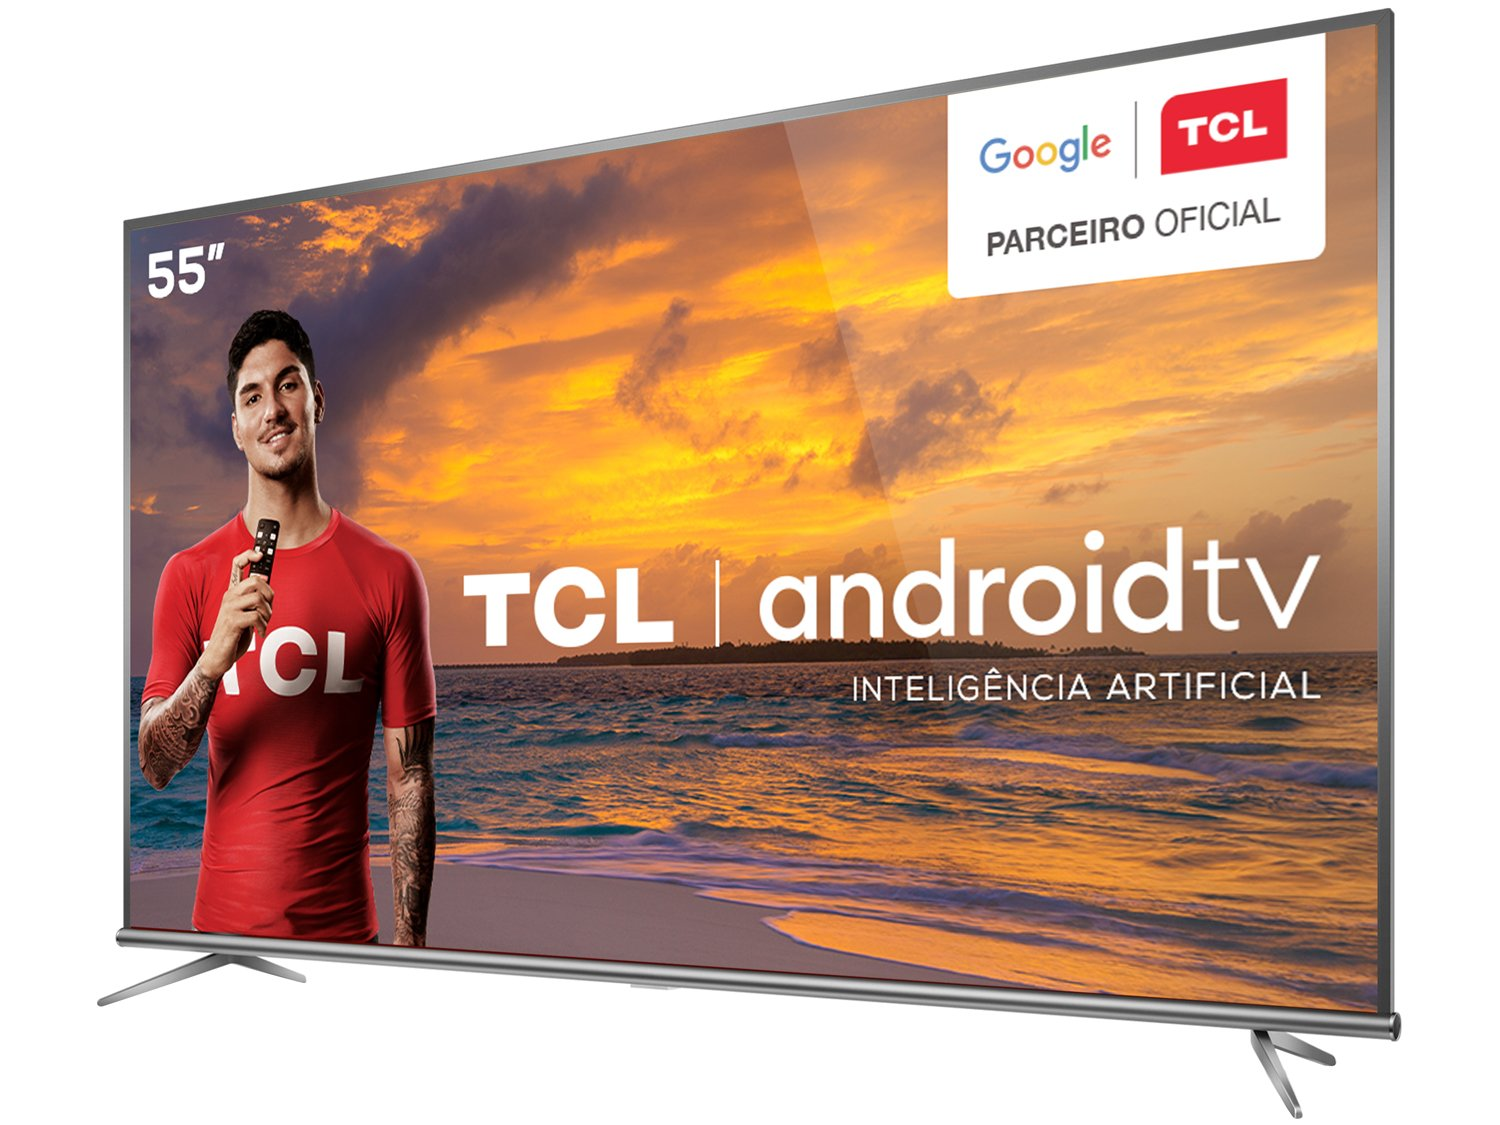 "Smart TV LED 55"" 4K TCL 55P8M com Android TV, Controle Remoto Comando de Voz, HDR, Micro Dimming, Google Assistant, Bluetooth, HDMI e USB - 11"